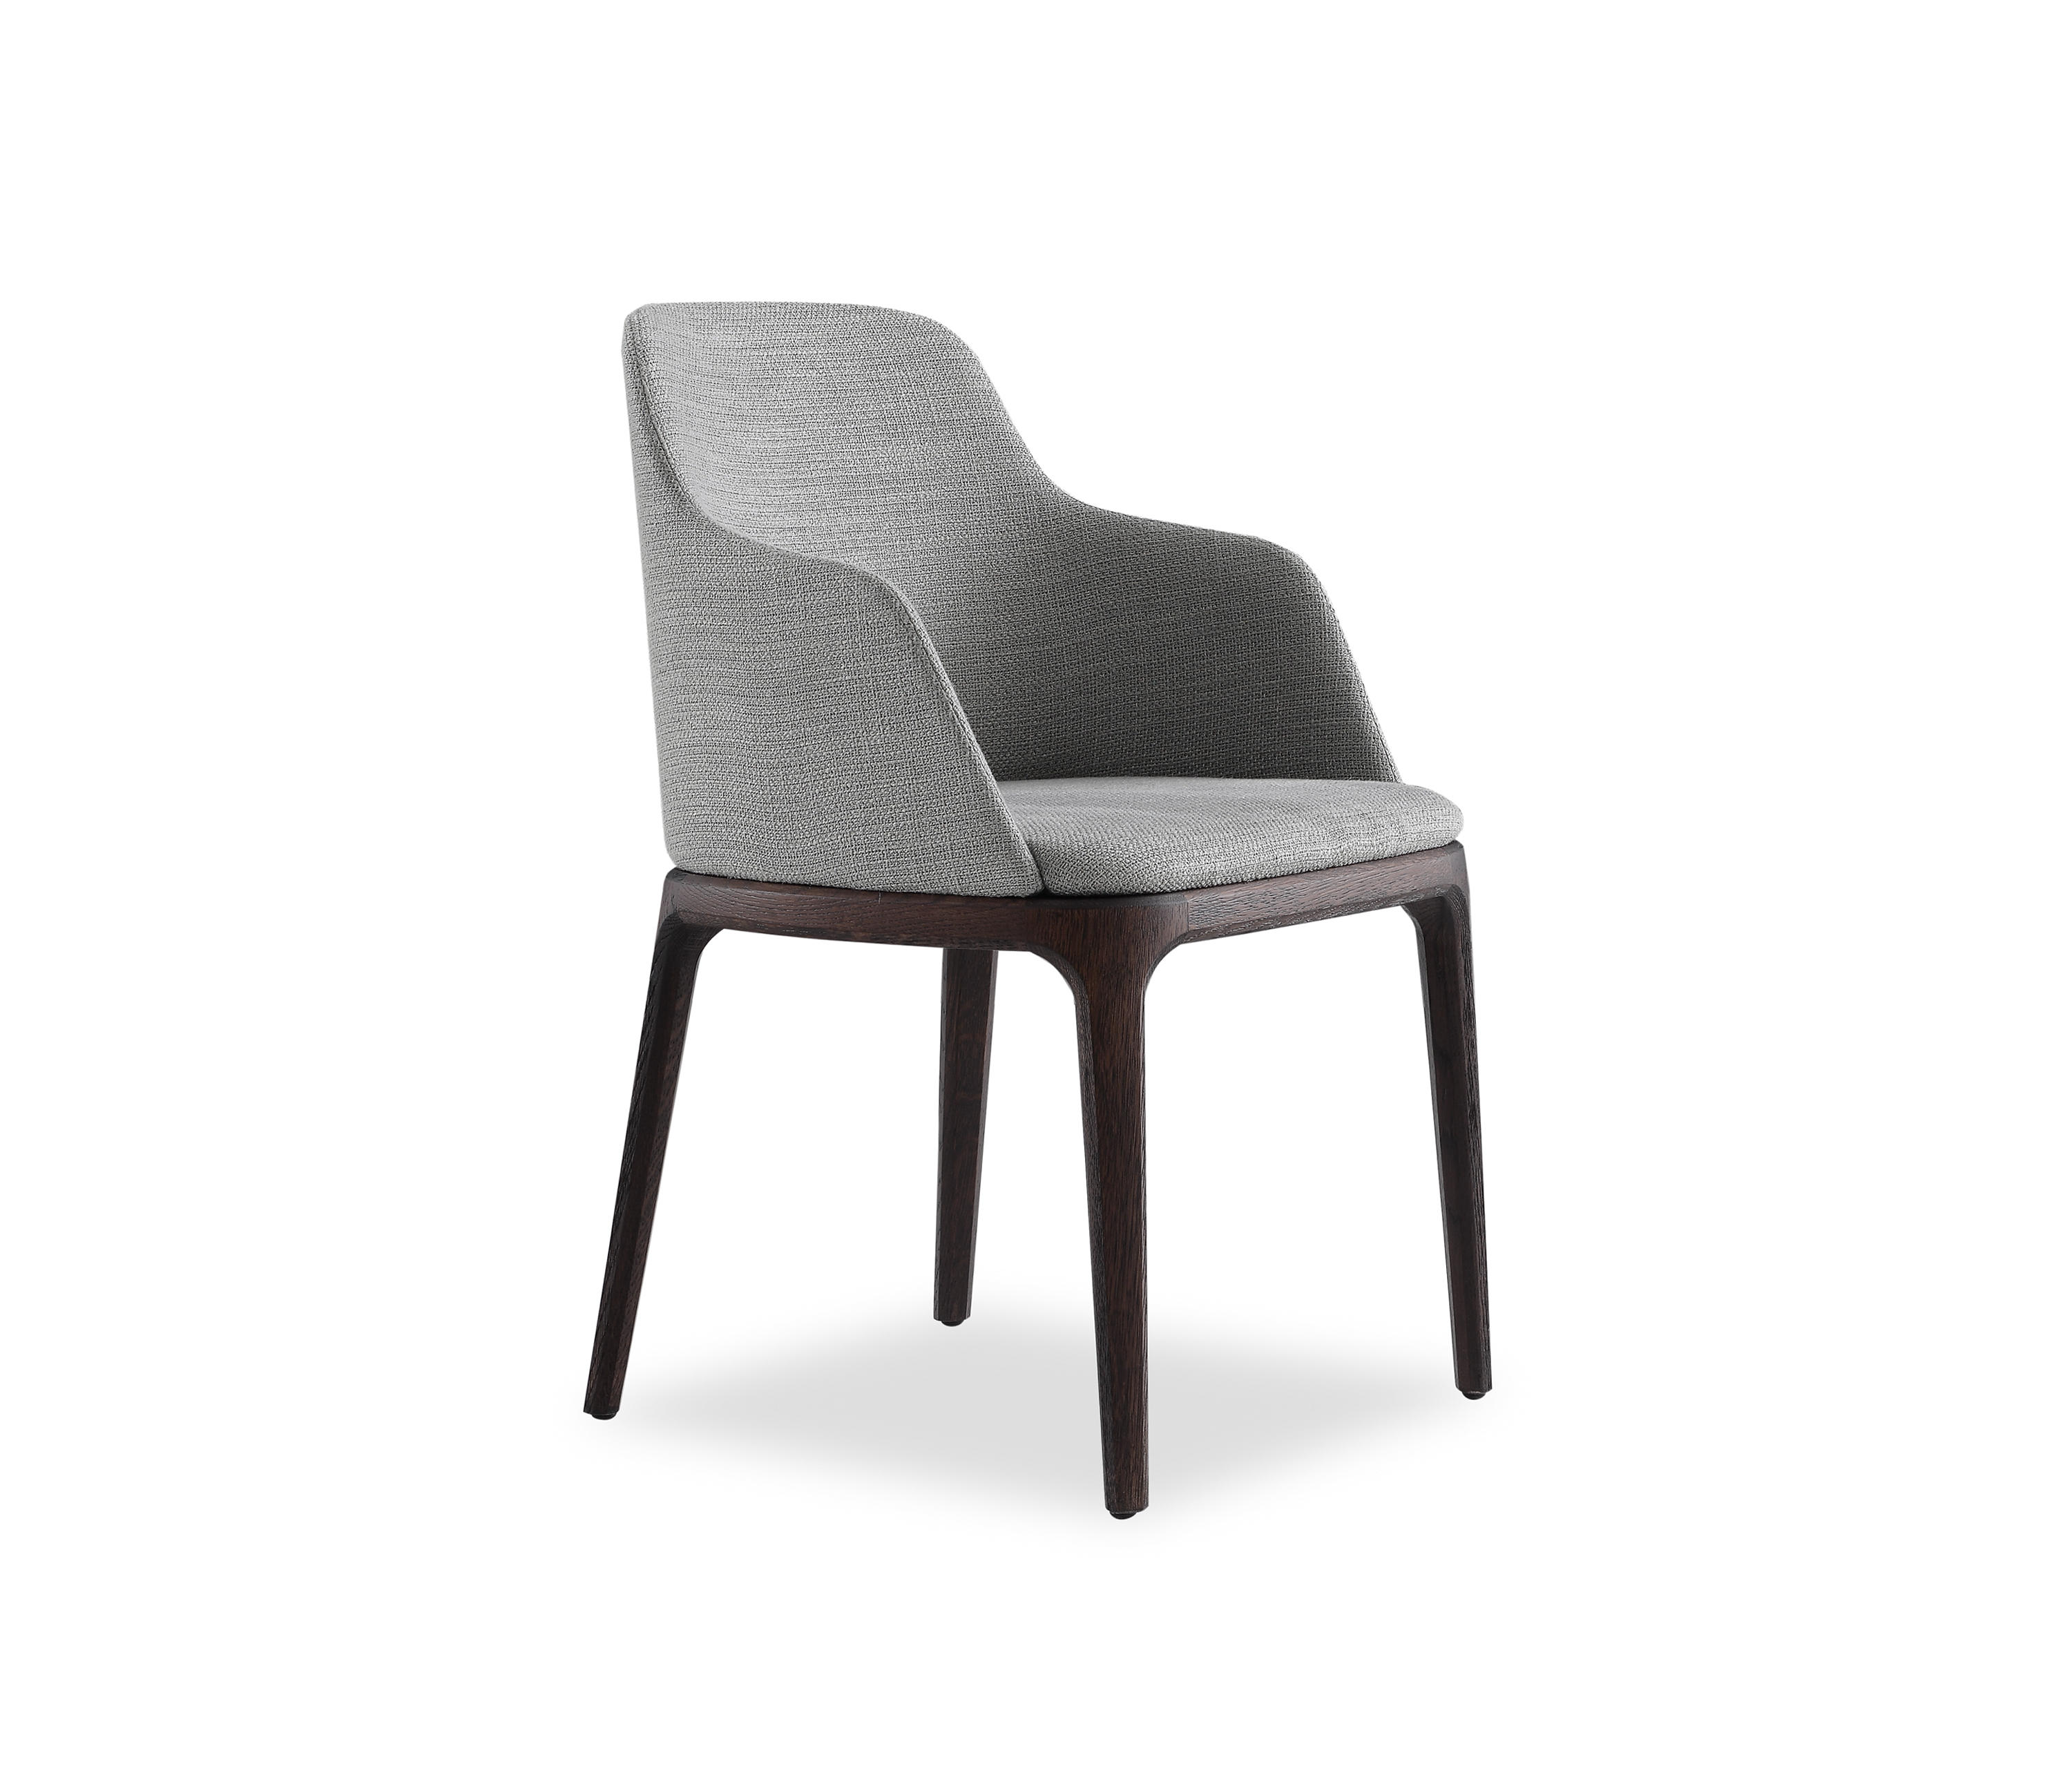 GRACE CHAIR - Chairs From Poliform